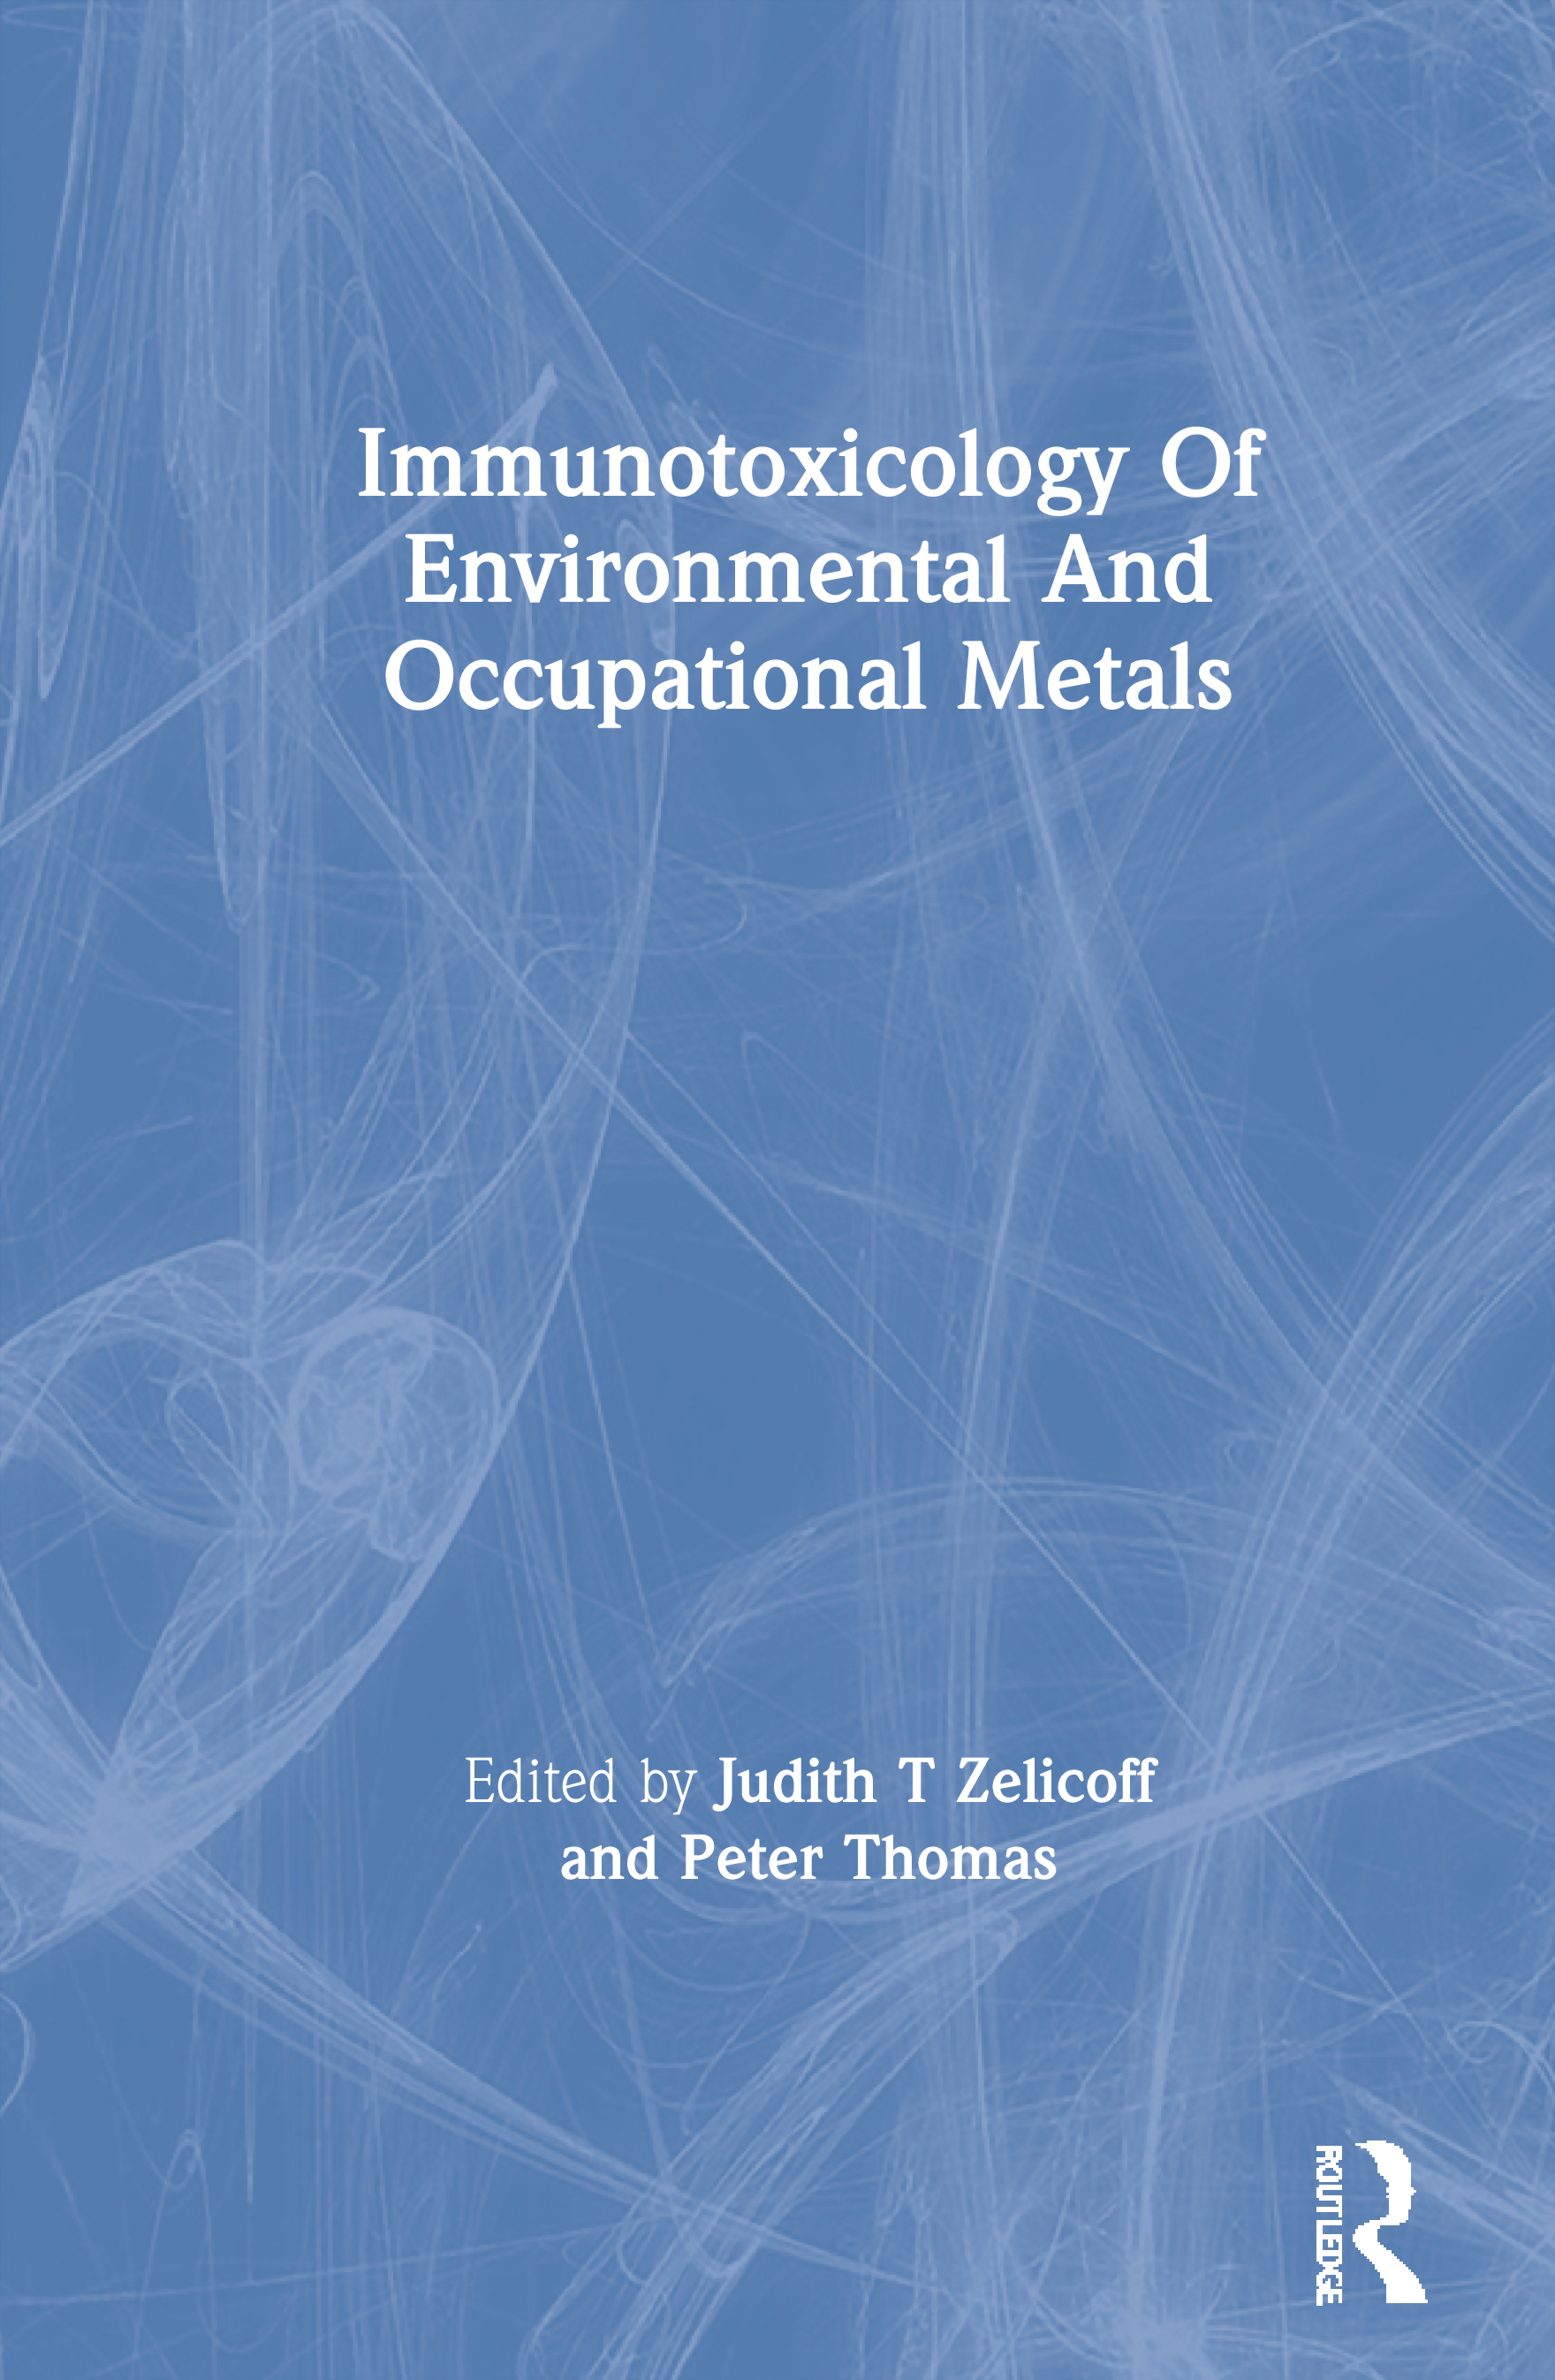 Immunotoxicology Of Environmental And Occupational Metals: 1st Edition (Hardback) book cover